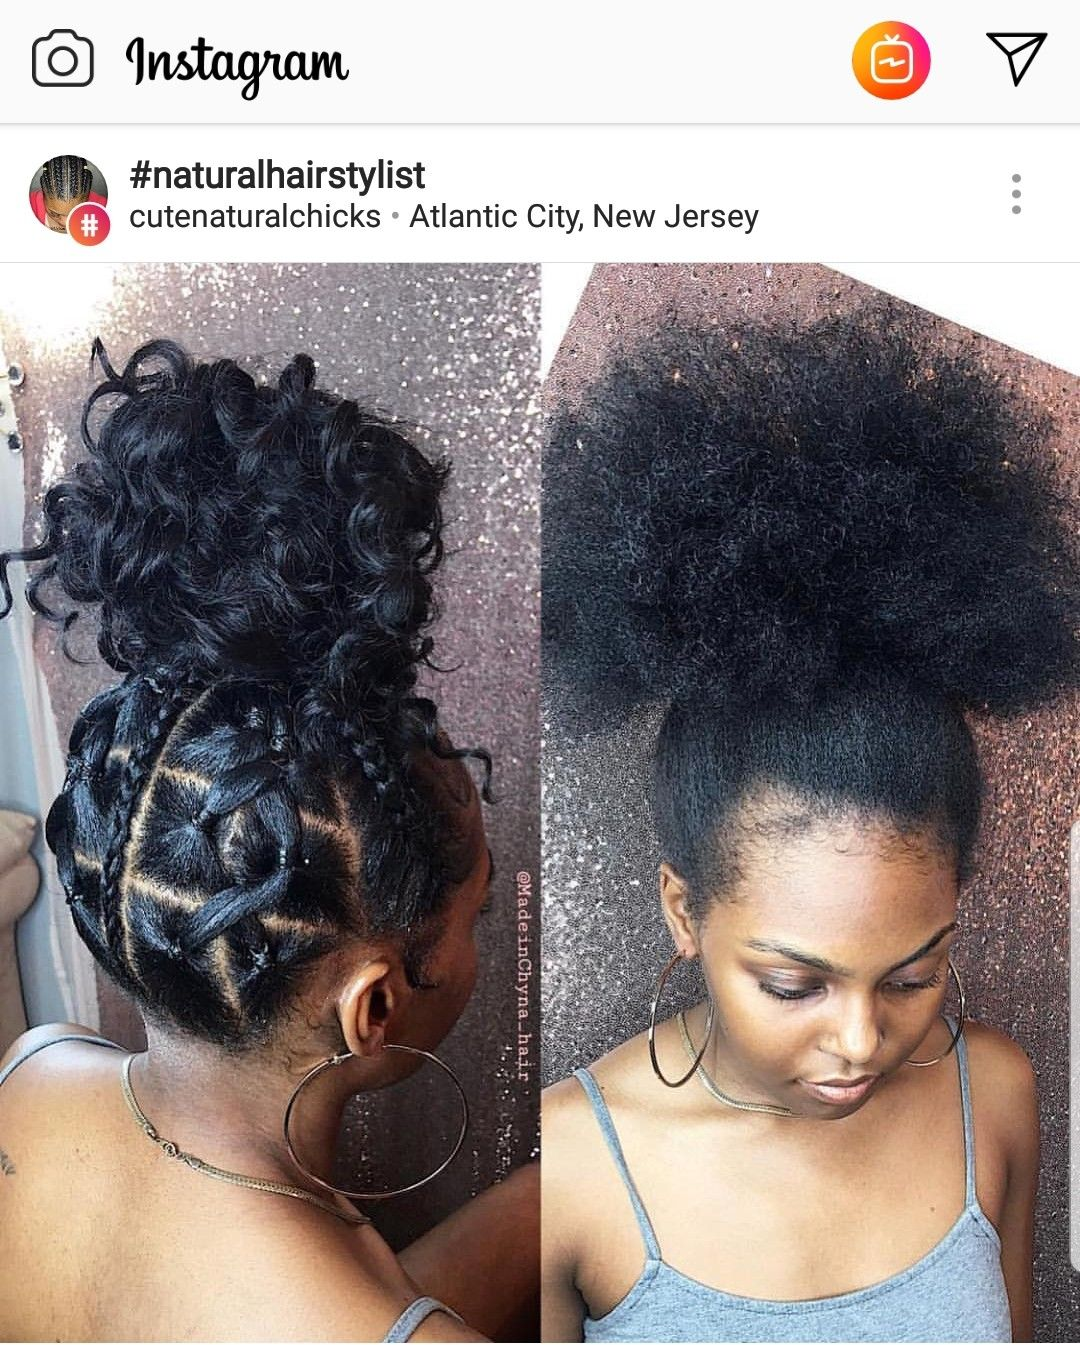 hair inspiration  Natural hair updo, Natural hair styles, Hair styles